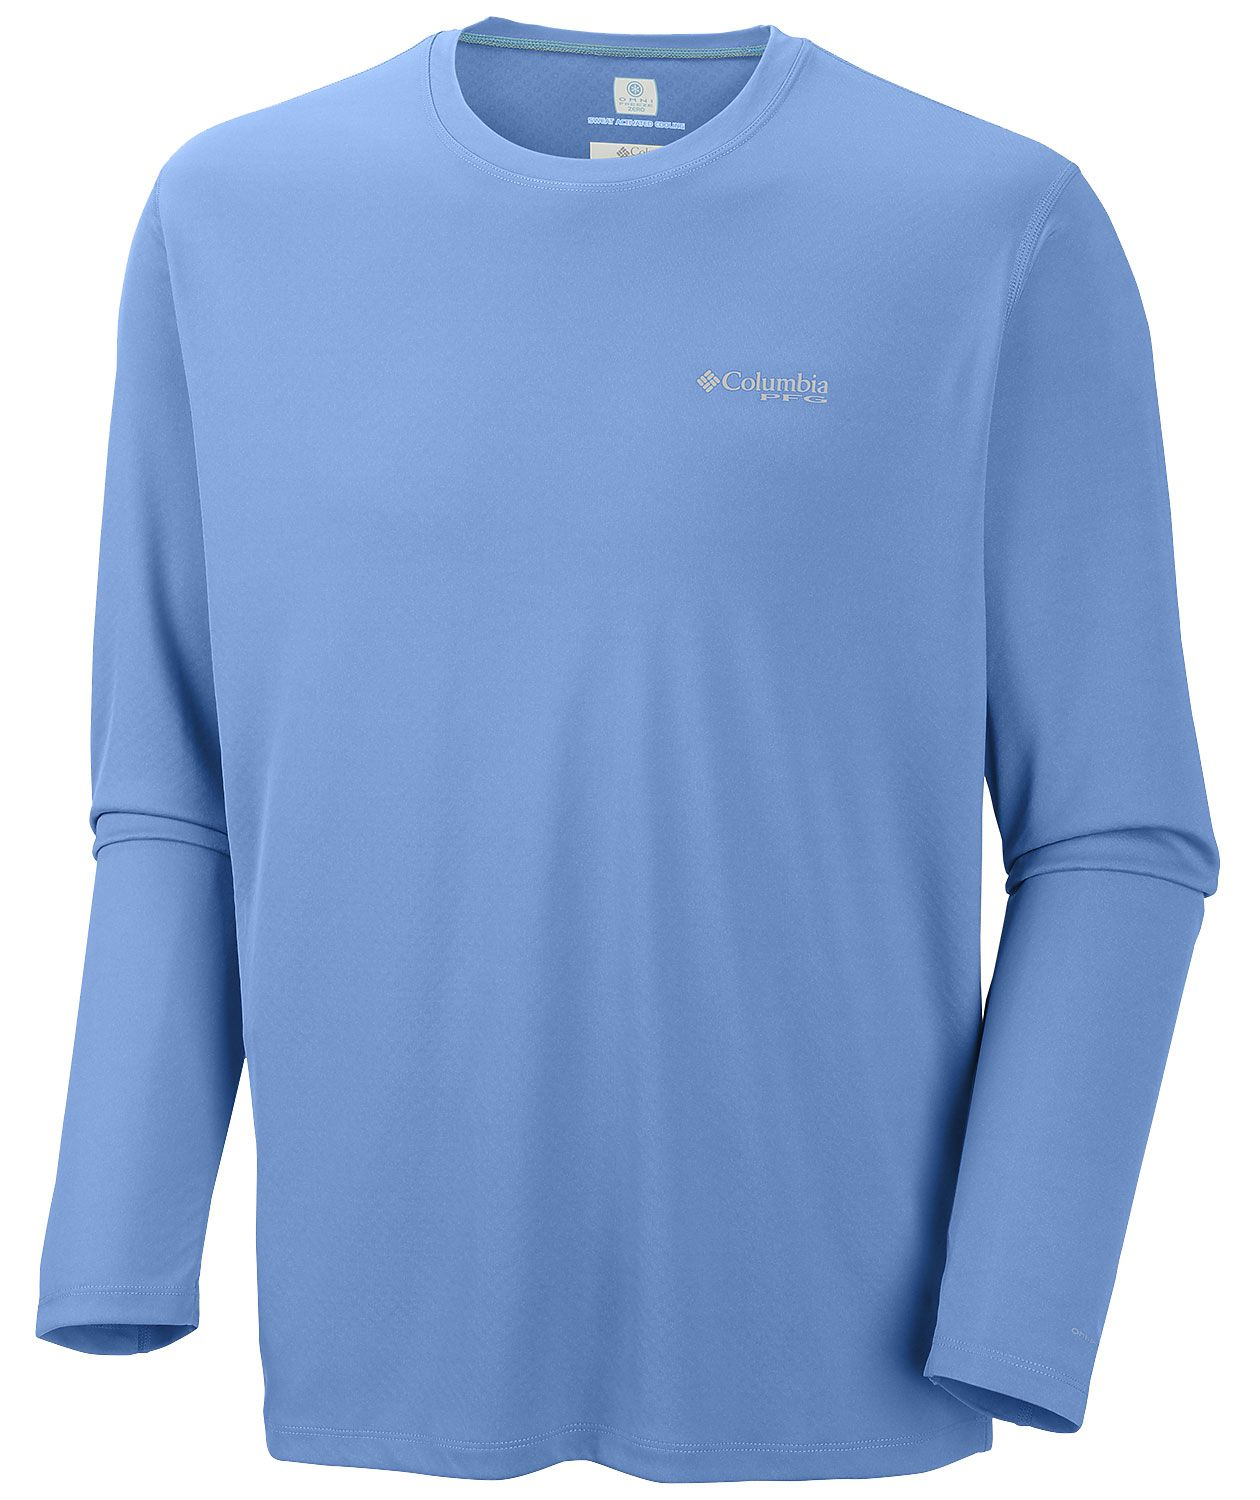 1bb8b67935f Put your brand on this Mens Columbia PFG Zero Rules Long Sleeve Shirt -  customize as low as $41.99 each!